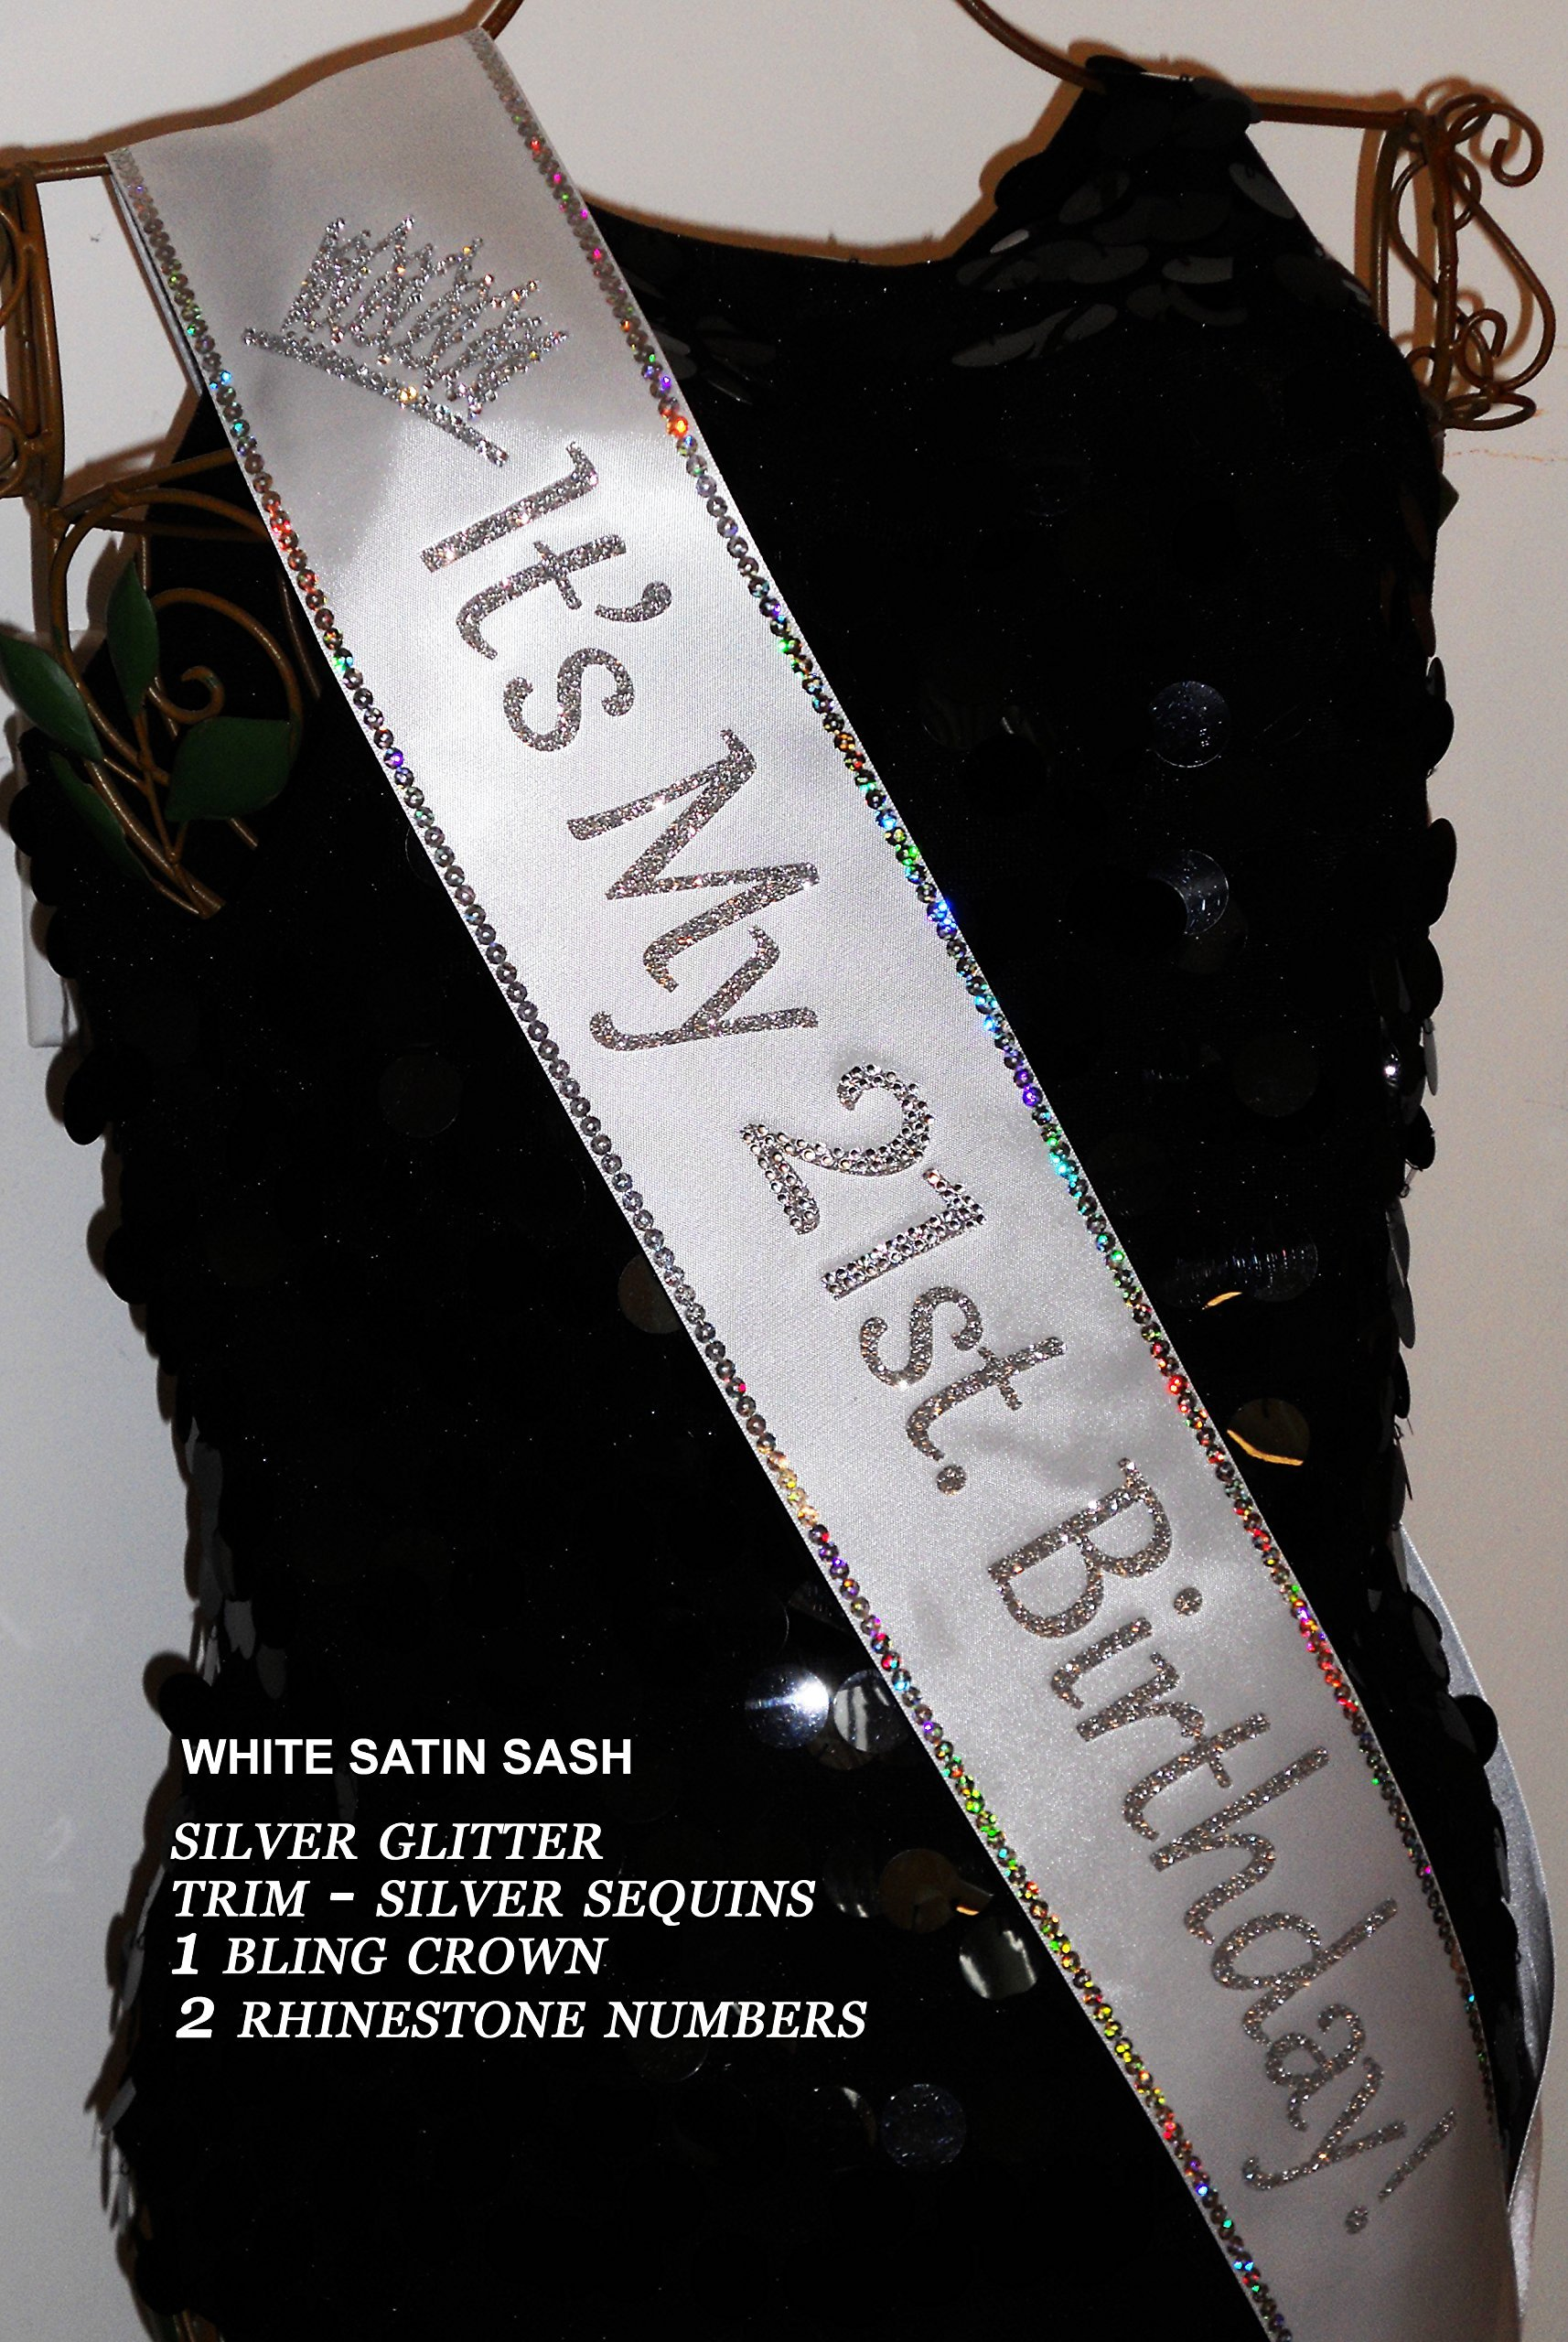 21st. Birthday Sash; 30, 40, 50, 60 Birthday Sash. Add your favorite Trim & Bling for extra sparkle at an additional cost. By SashANation